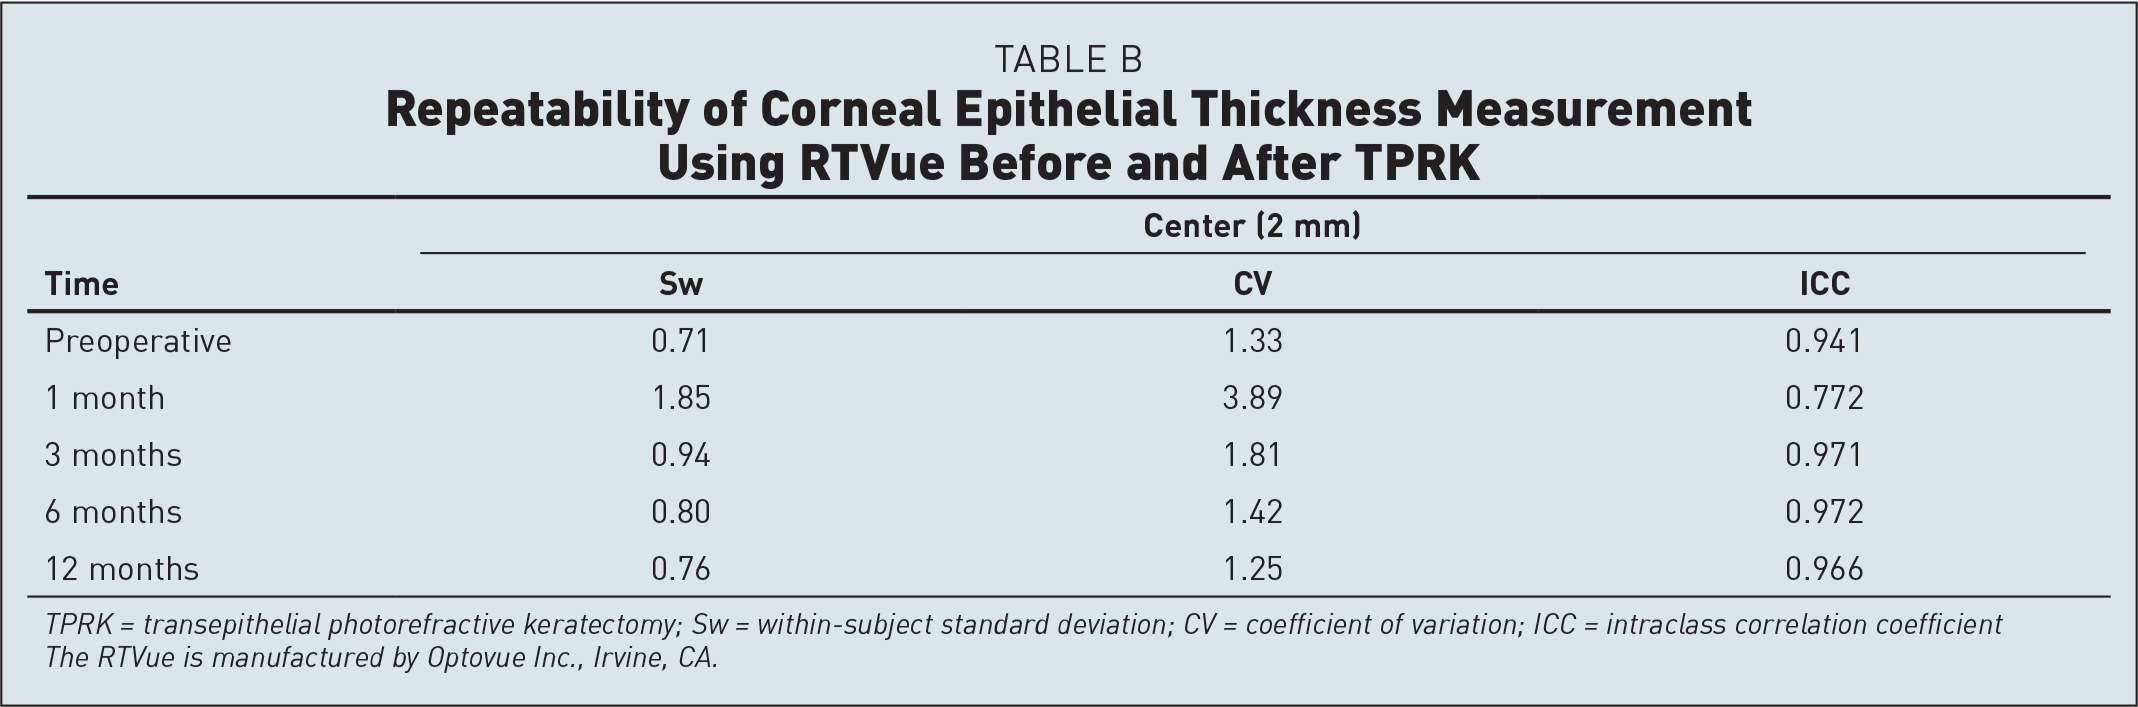 Repeatability of Corneal Epithelial Thickness Measurement Using RTVue Before and After TPRK